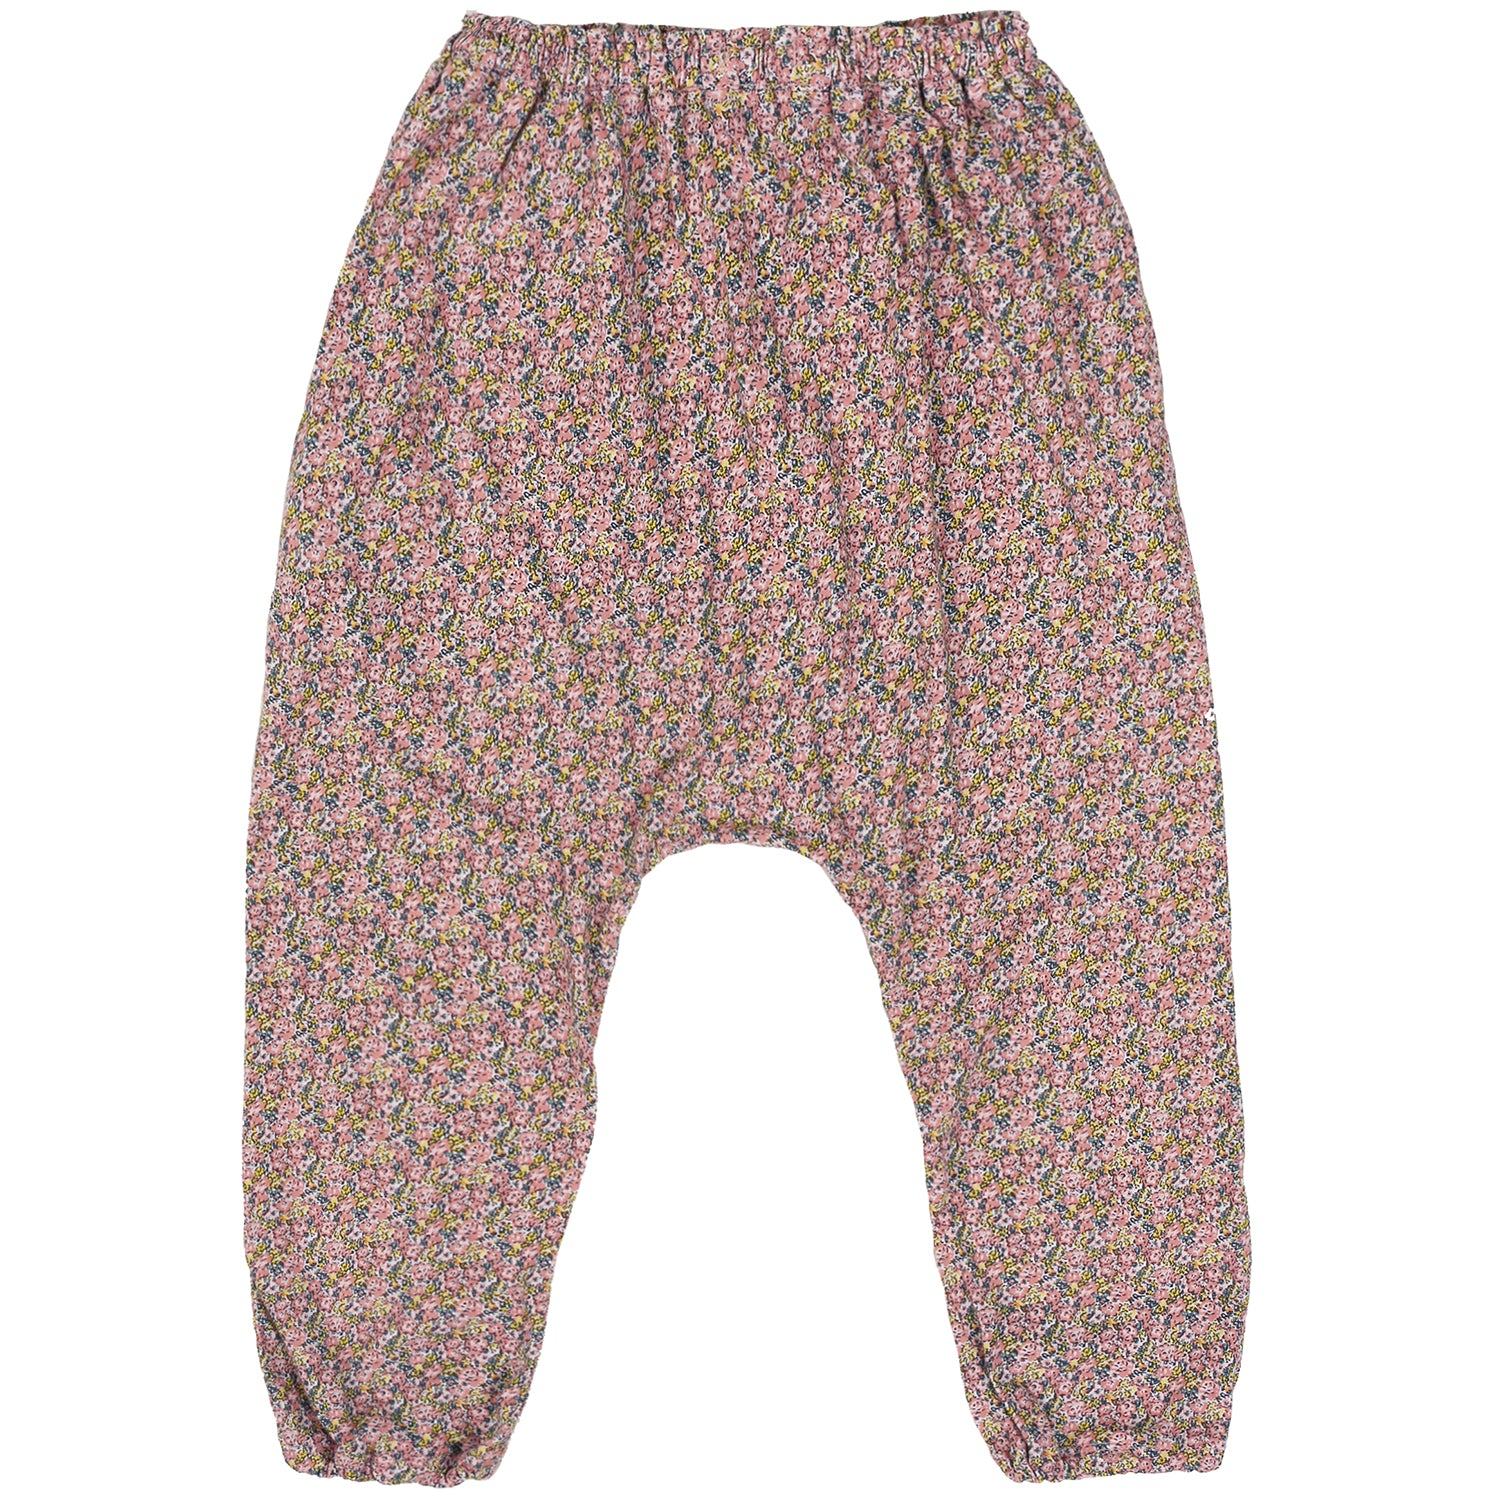 yoya, kids, girls, tambere, summer, lightweight, floral print, slouchy, pull on pants